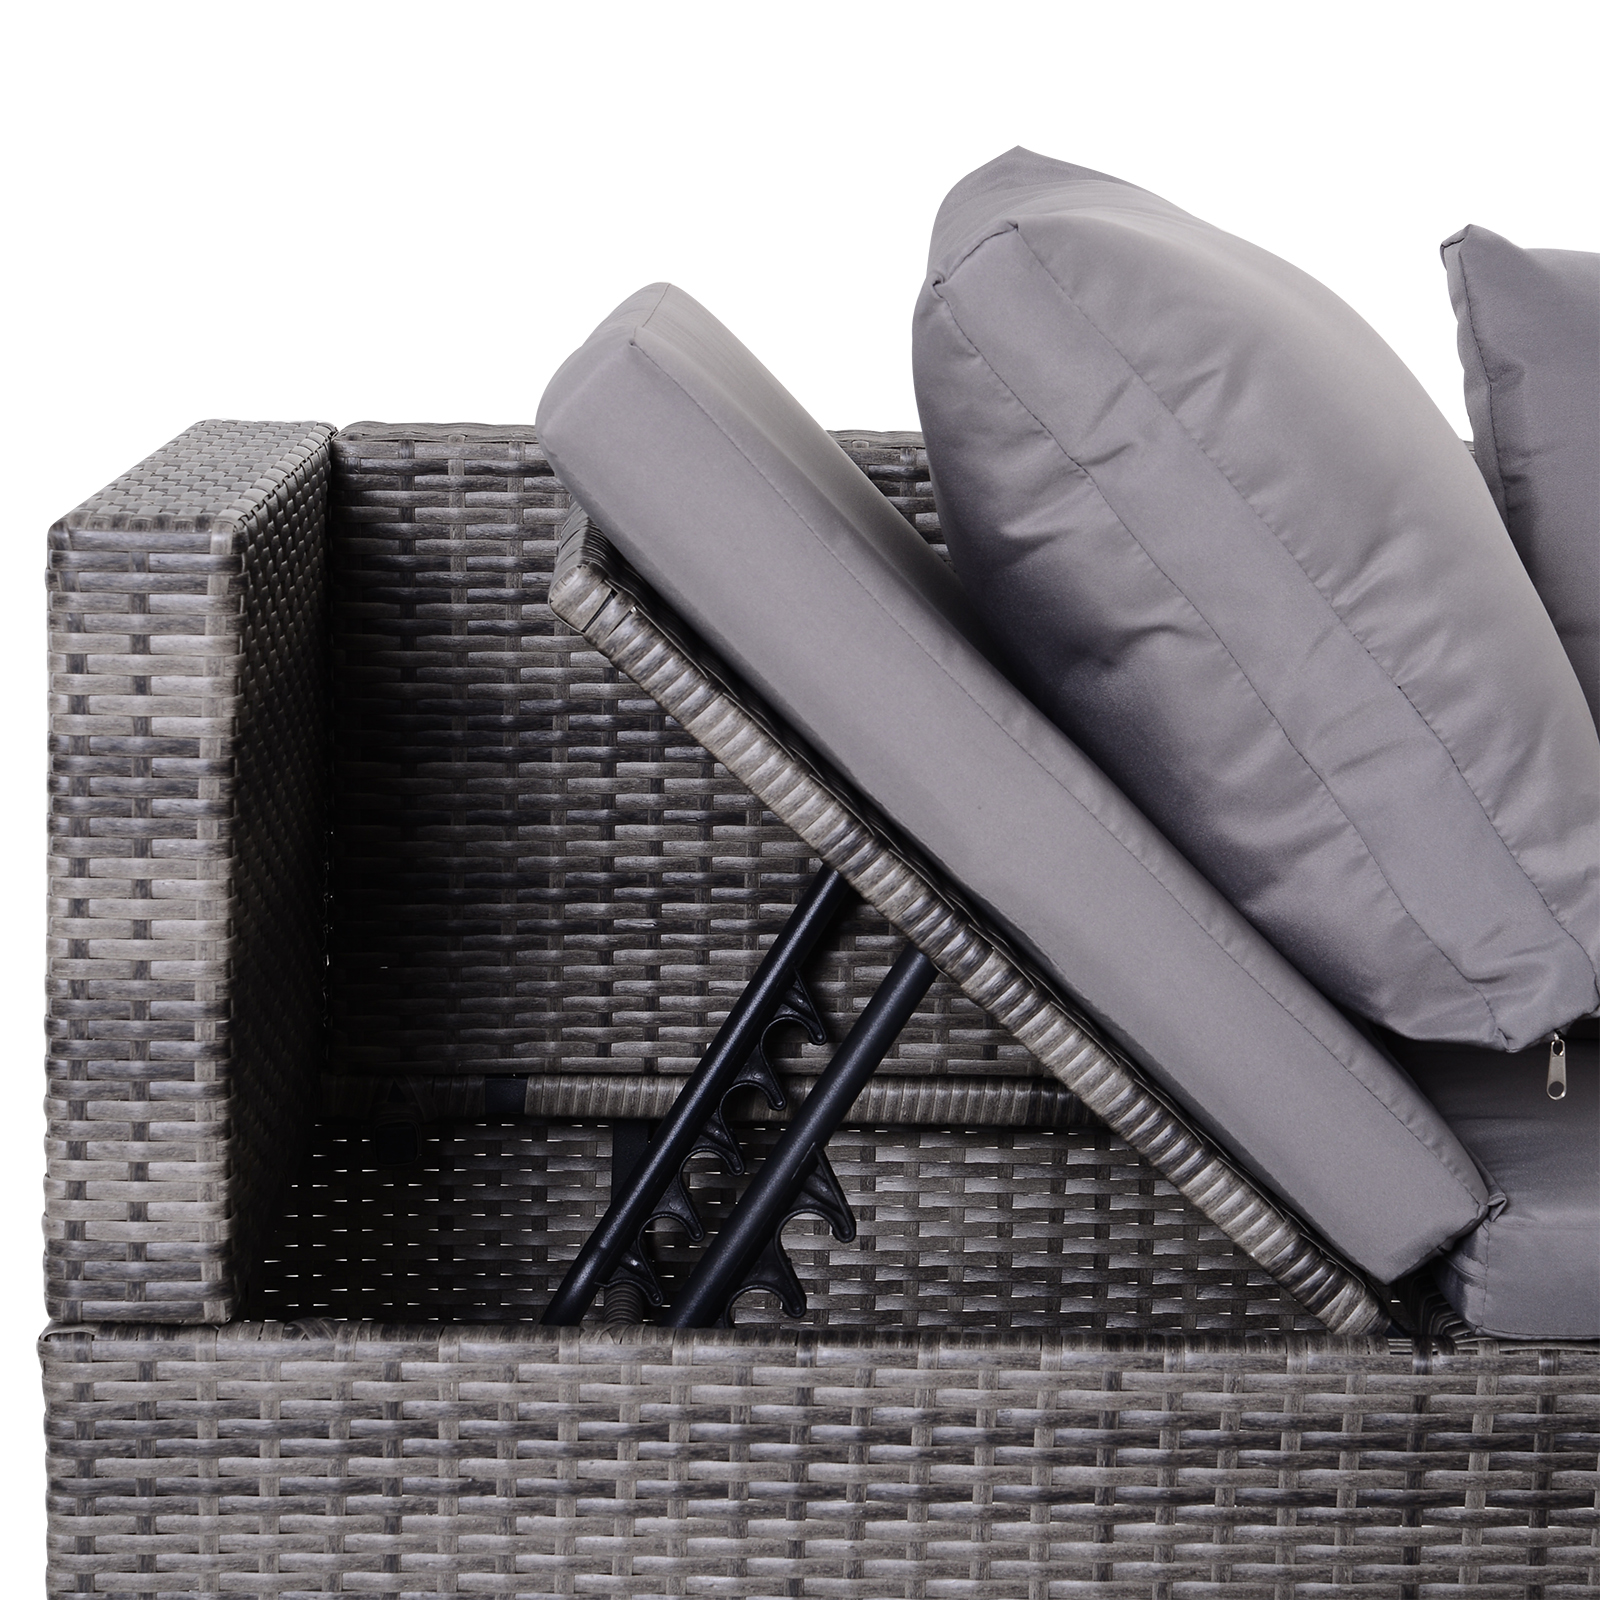 3-Piece-Adjustable-Seat-Rattan-Wicker-Sofa-Set-Sleeping-Couch-Bed-Lounge-Grey miniature 10